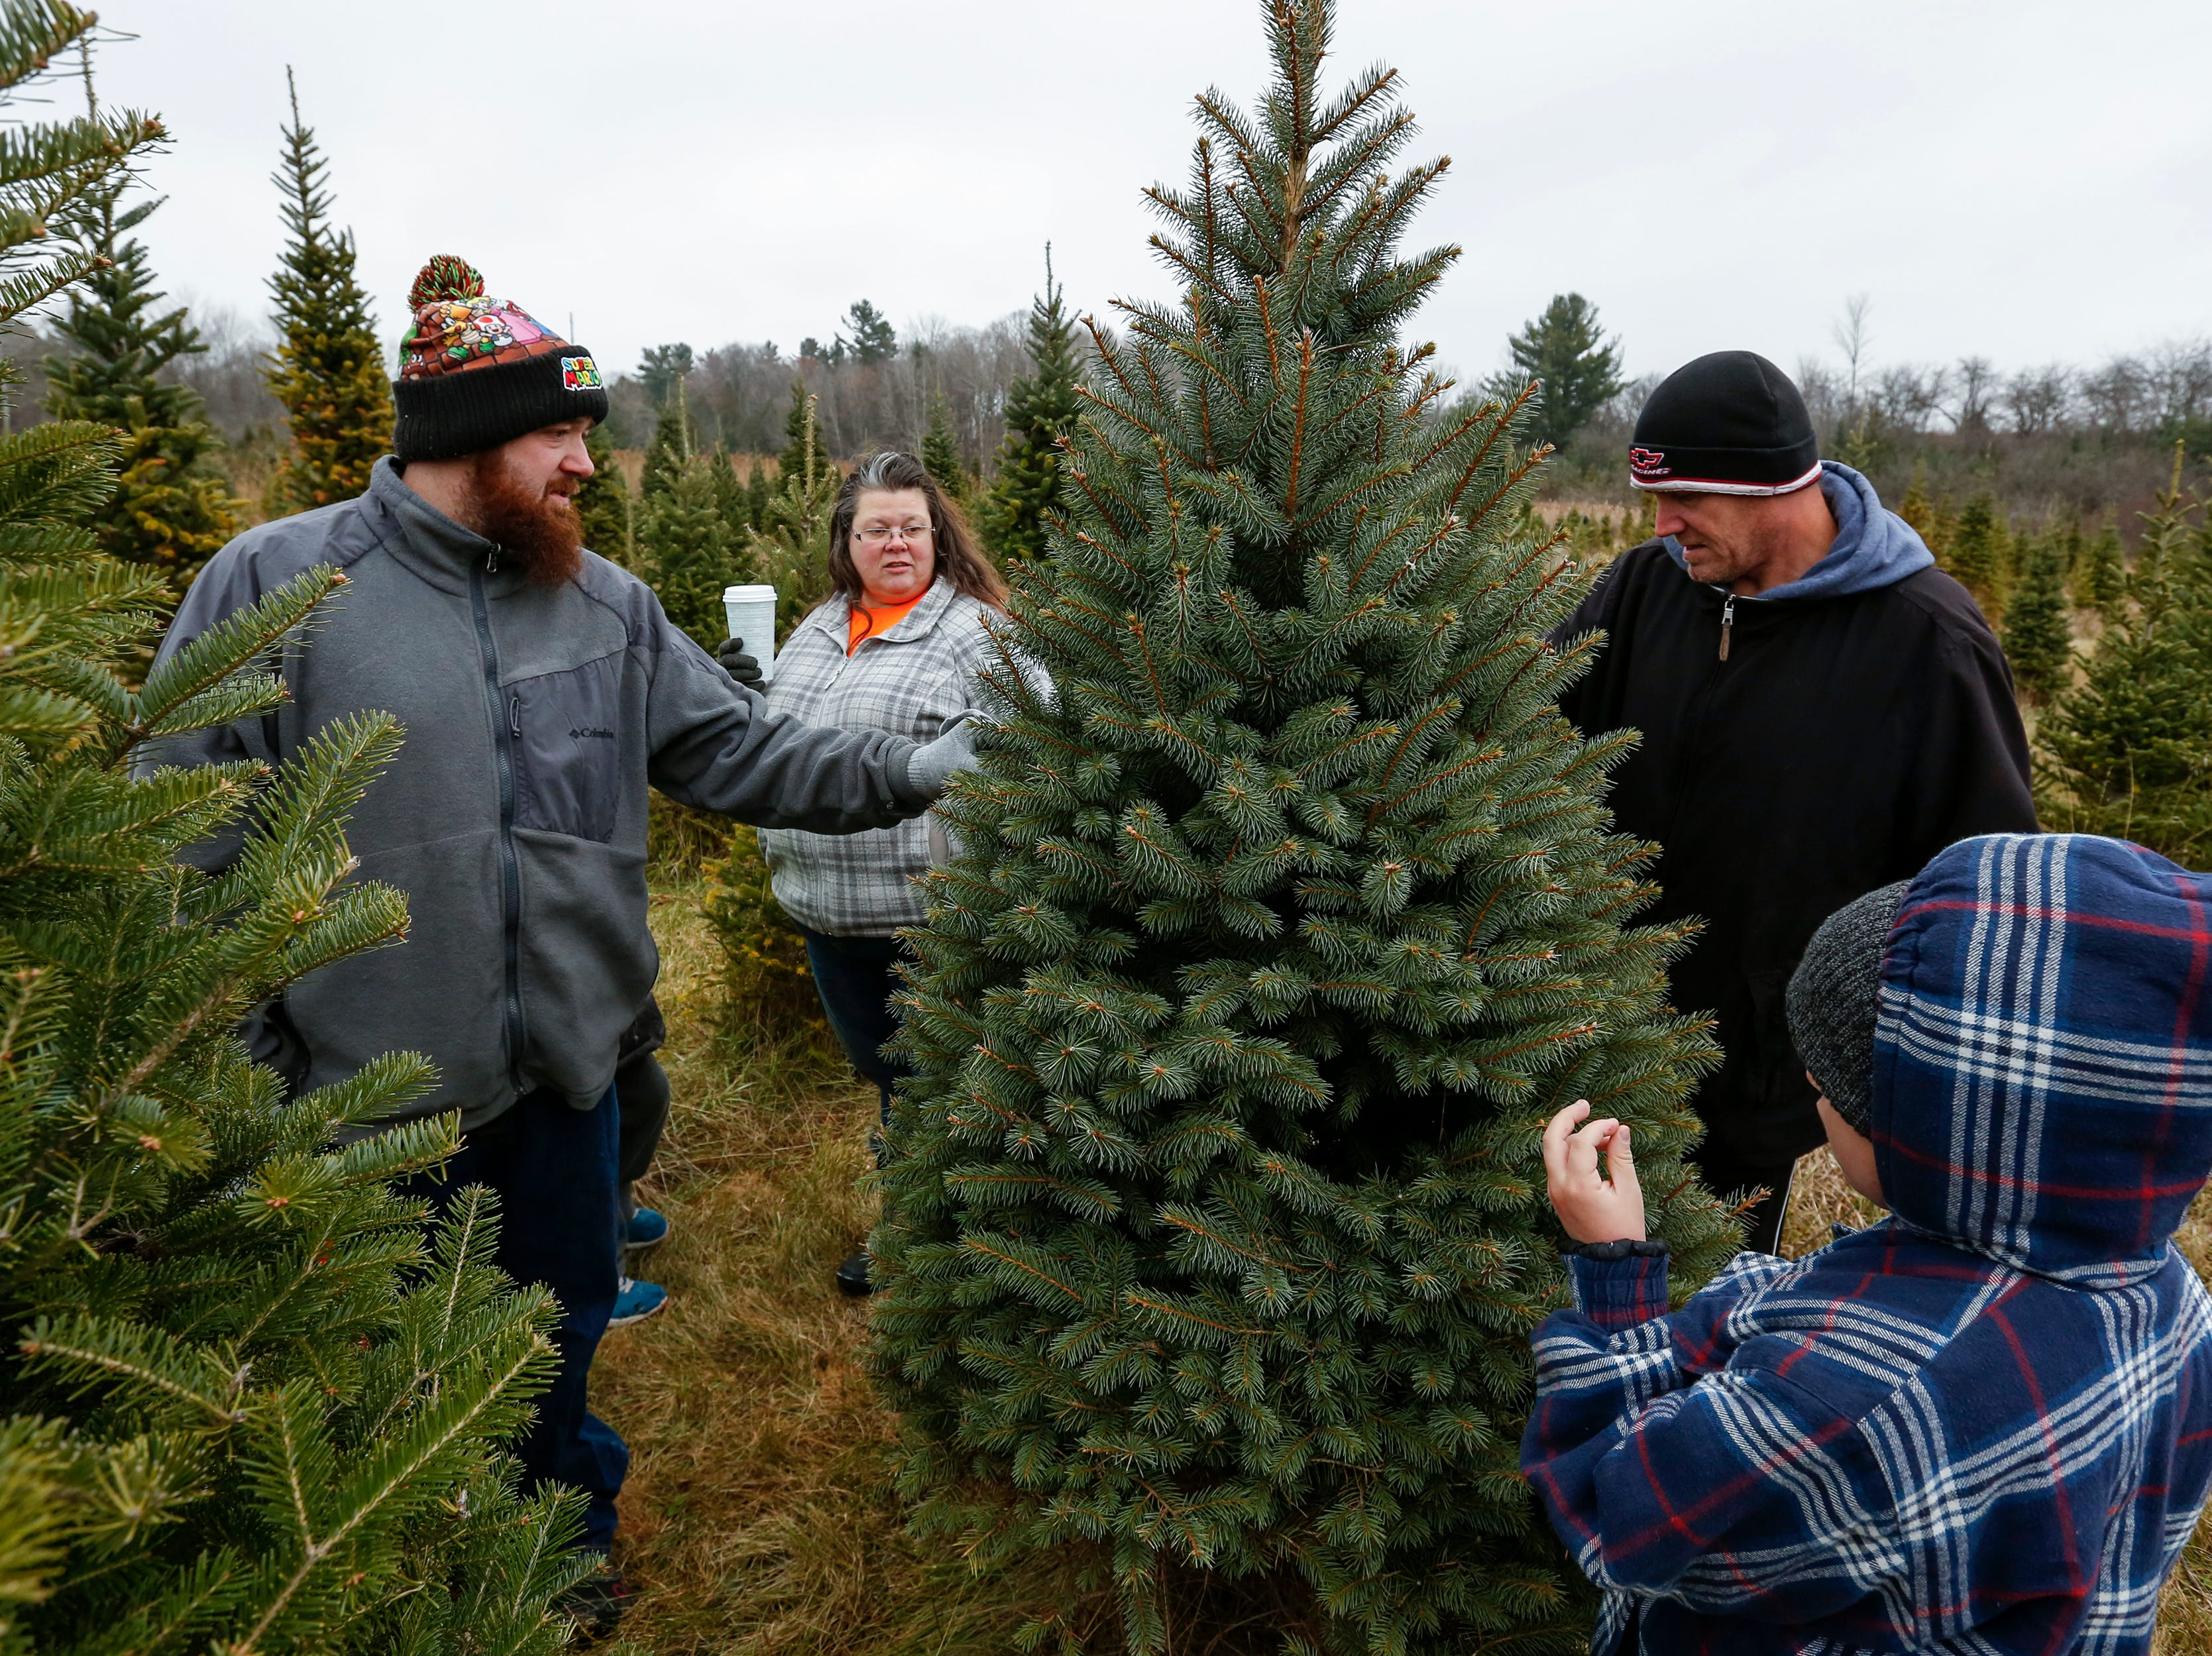 From left, Cody Graham, Jeanne Rutherford, David Schultz and Cody Jr., 8, find the perfect Christmas tree at Taylor Trees Saturday, December 1, 2018, in Mishicot, Wis. Joshua Clark/USA TODAY NETWORK-Wisconsin